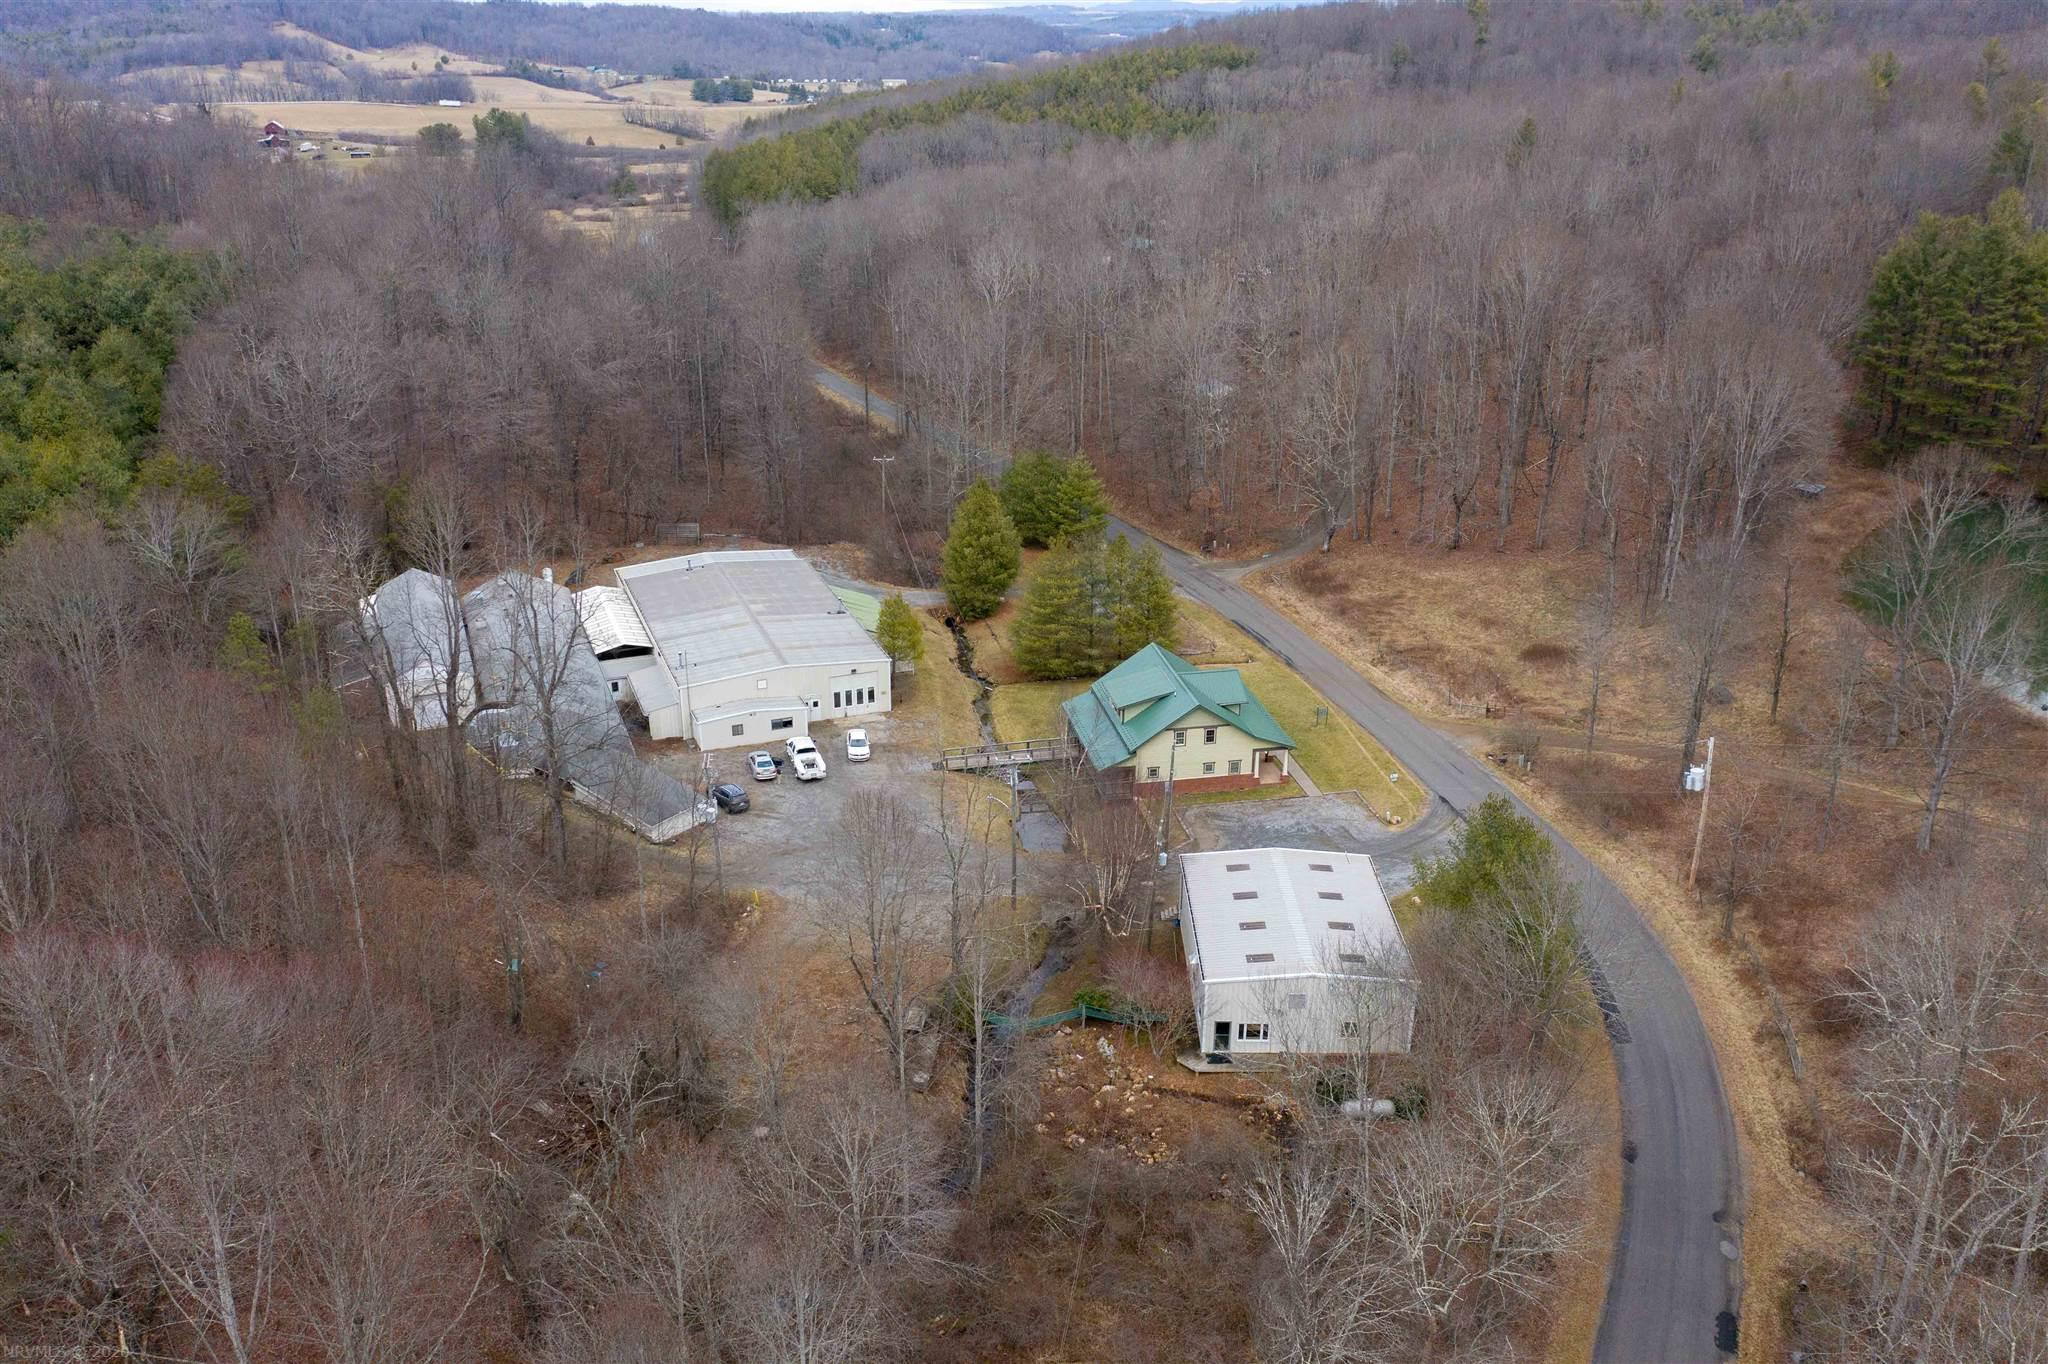 592 Paradise Lane SE- Floyd- Virginia 24091, ,Commercial,For Sale,592 Paradise Lane SE,407917